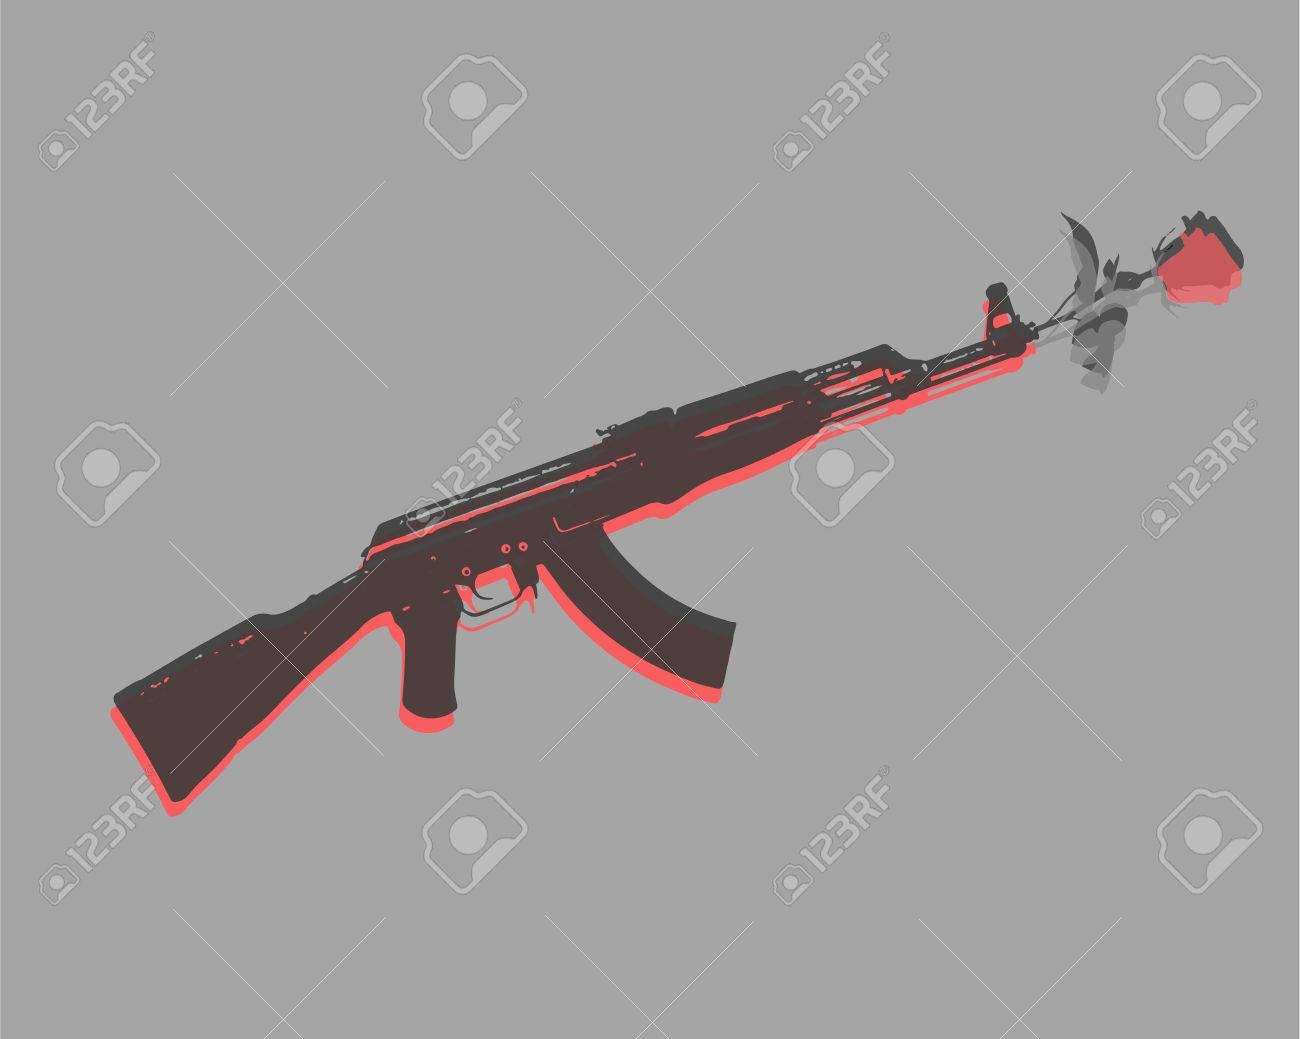 1300x1039 Hand Drawn Vector Illustration Or Drawing Of An Automatic Gun